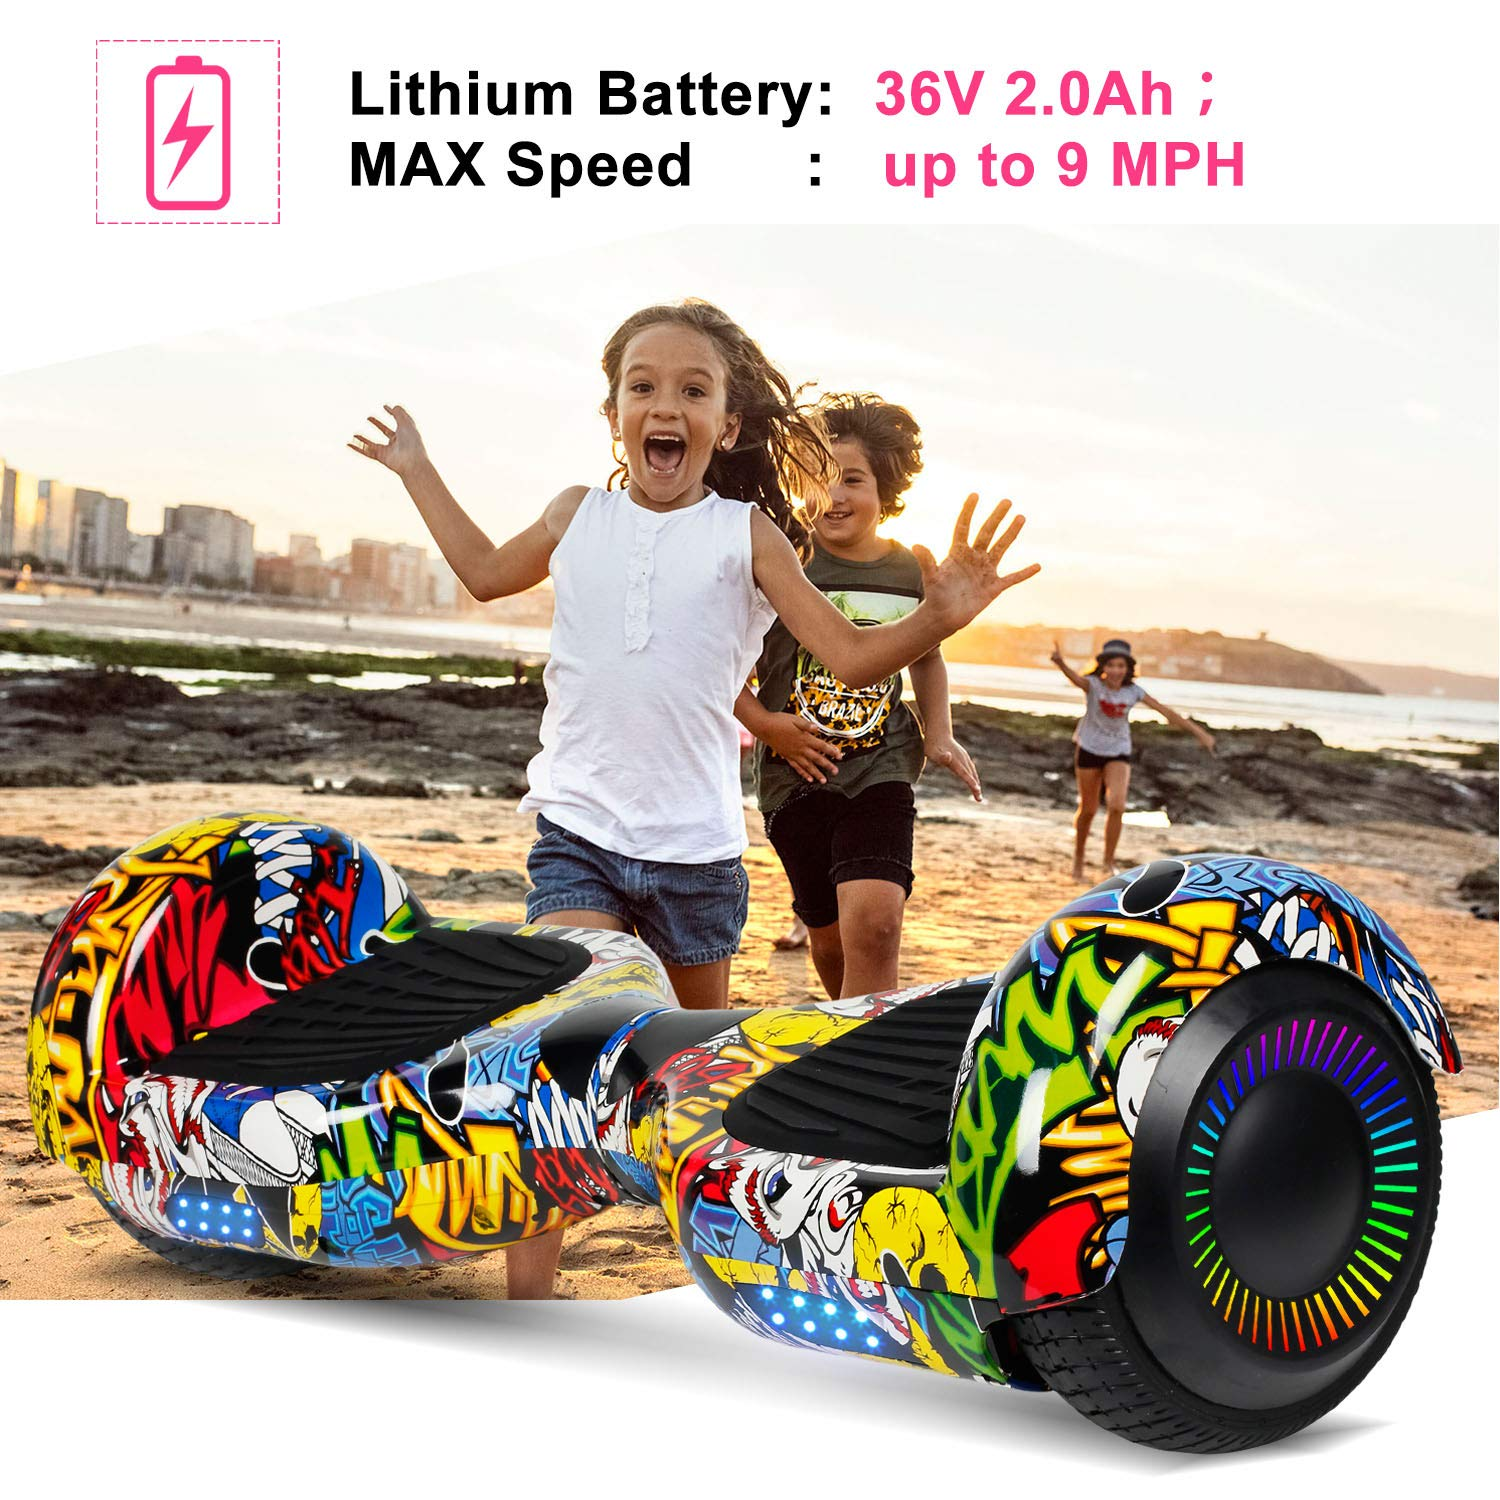 SISIGAD Hoverboard Self Balancing Scooter 6.5'' Two-Wheel Self Balancing Hoverboard with LED Lights Electric Scooter for Adult Kids Gift UL 2272 Certified Fun Edition - Graffiti by SISIGAD (Image #3)